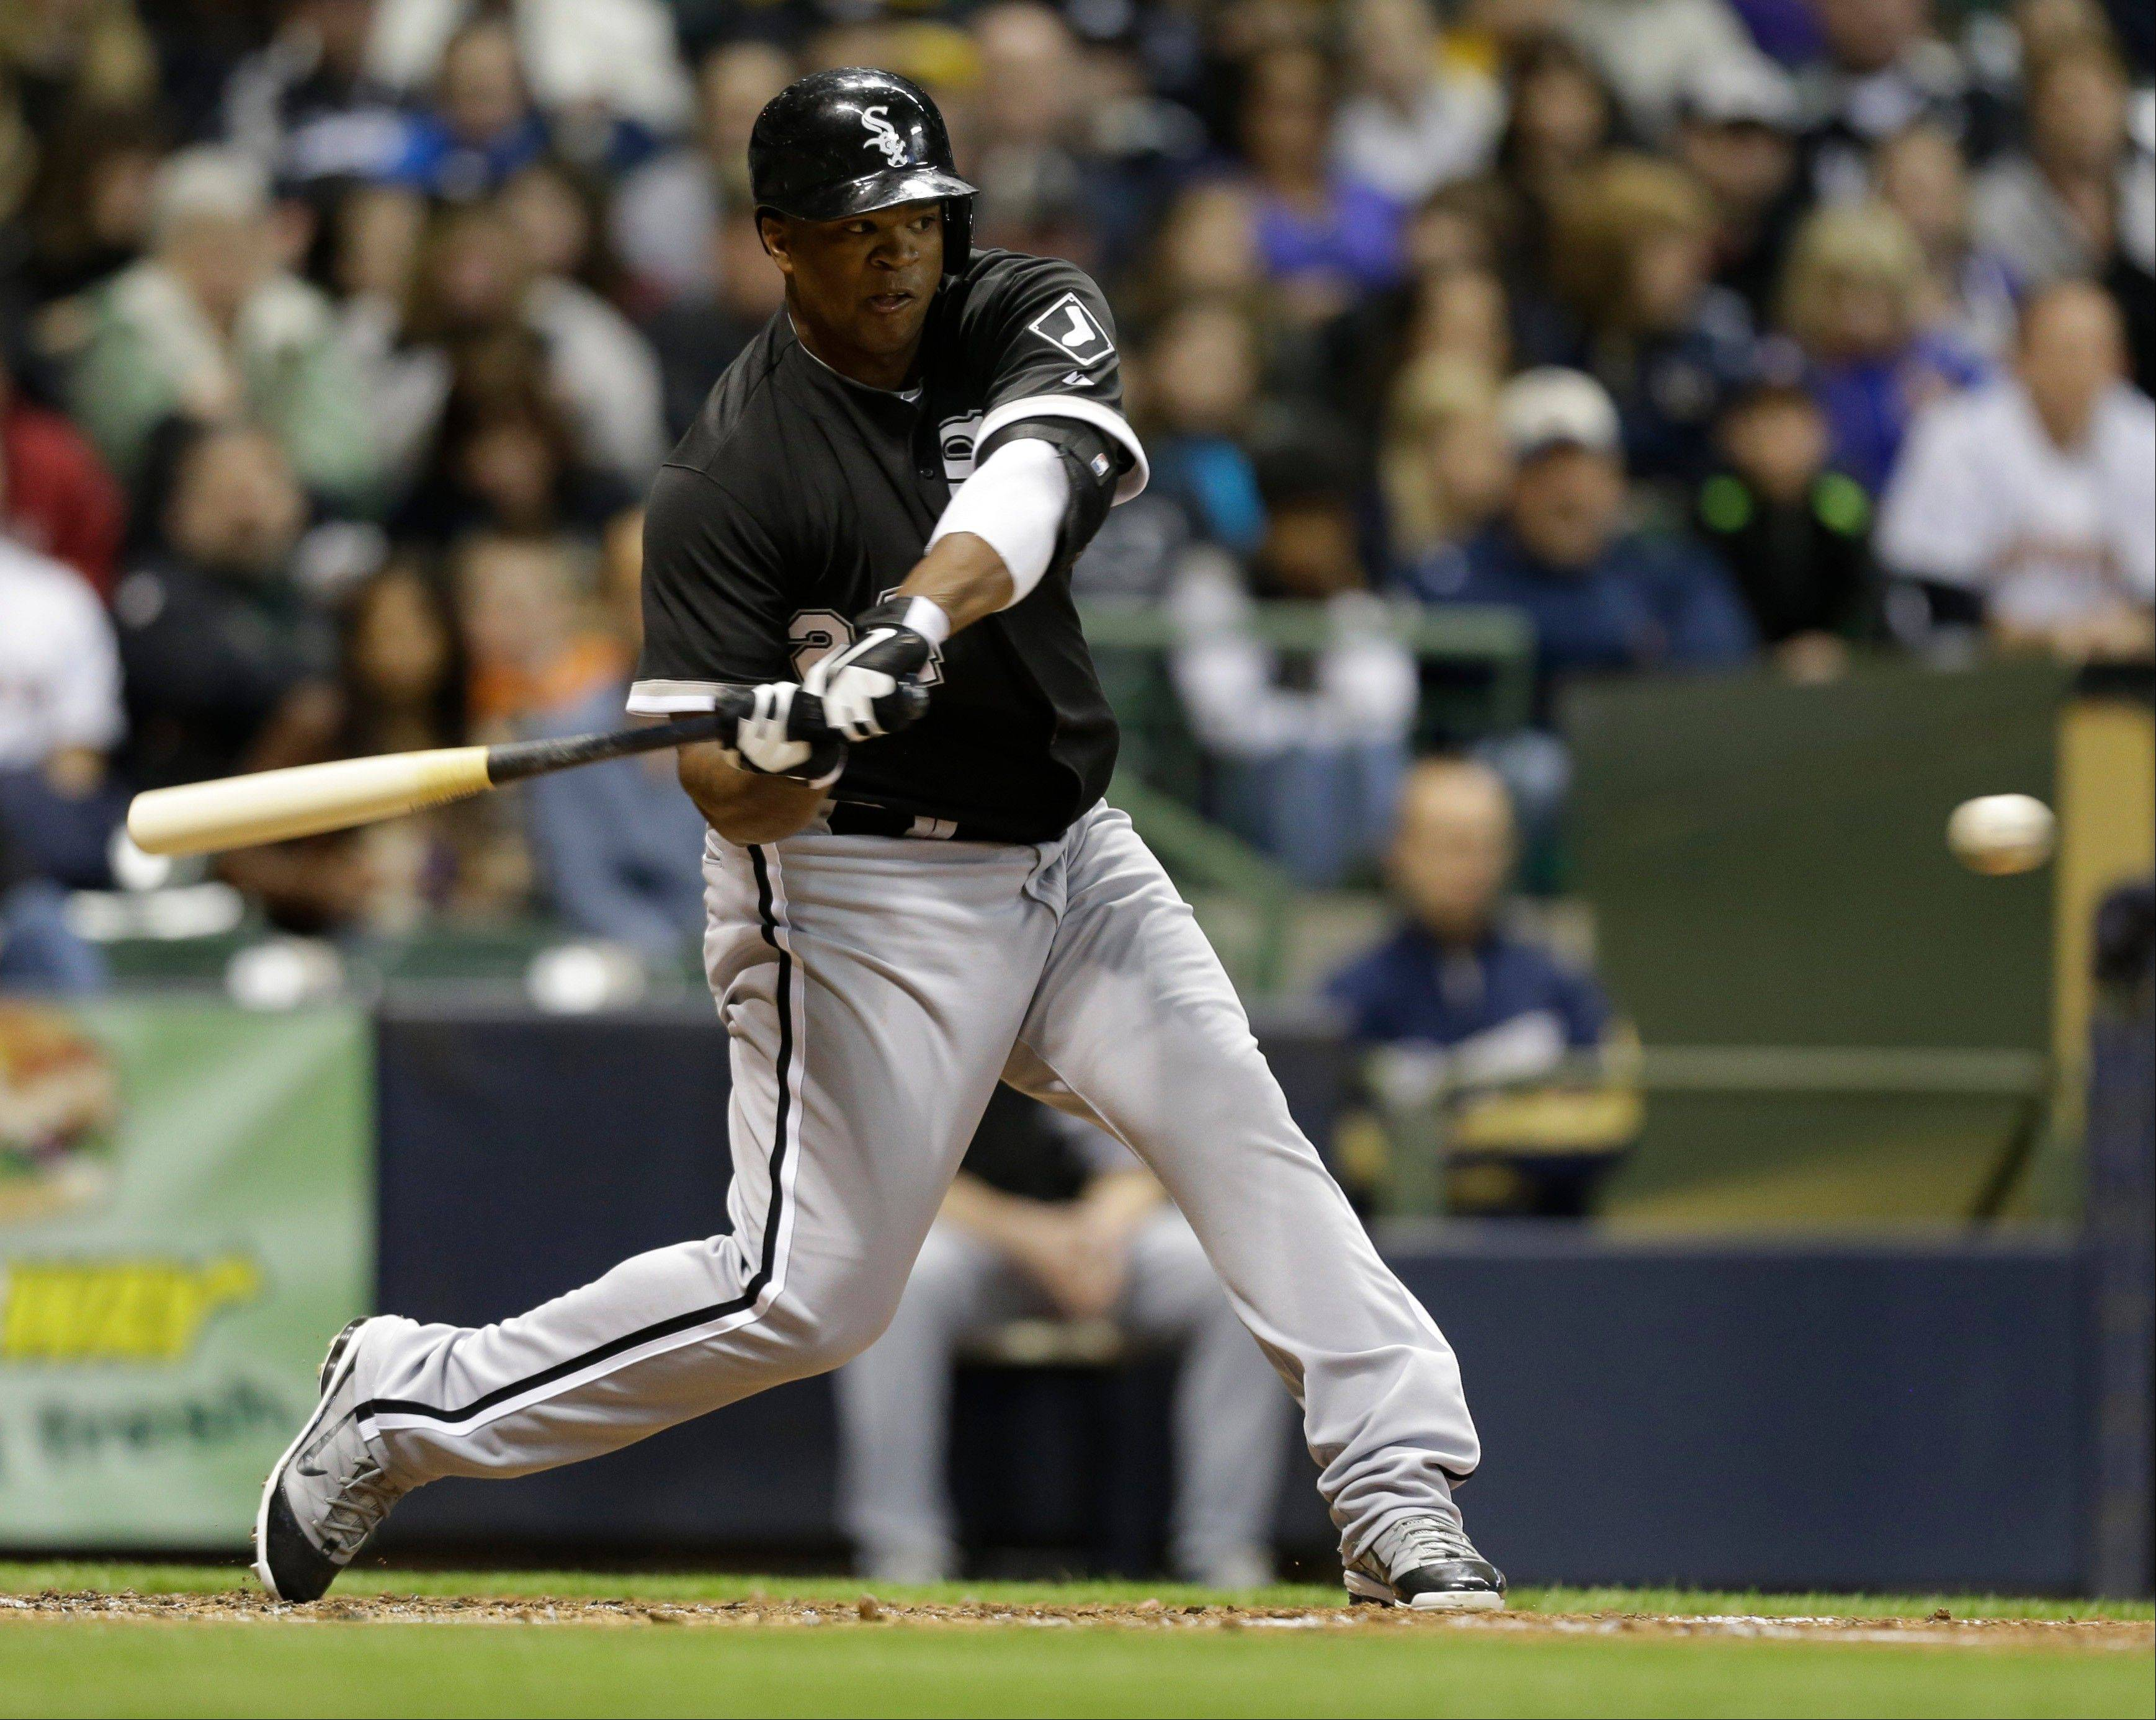 White Sox outfielder Dayan Viciedo hits a two-run double against the Milwaukee Brewers during the fourth inning of an exhibition baseball game Friday, March 29, 2013, in Milwaukee.